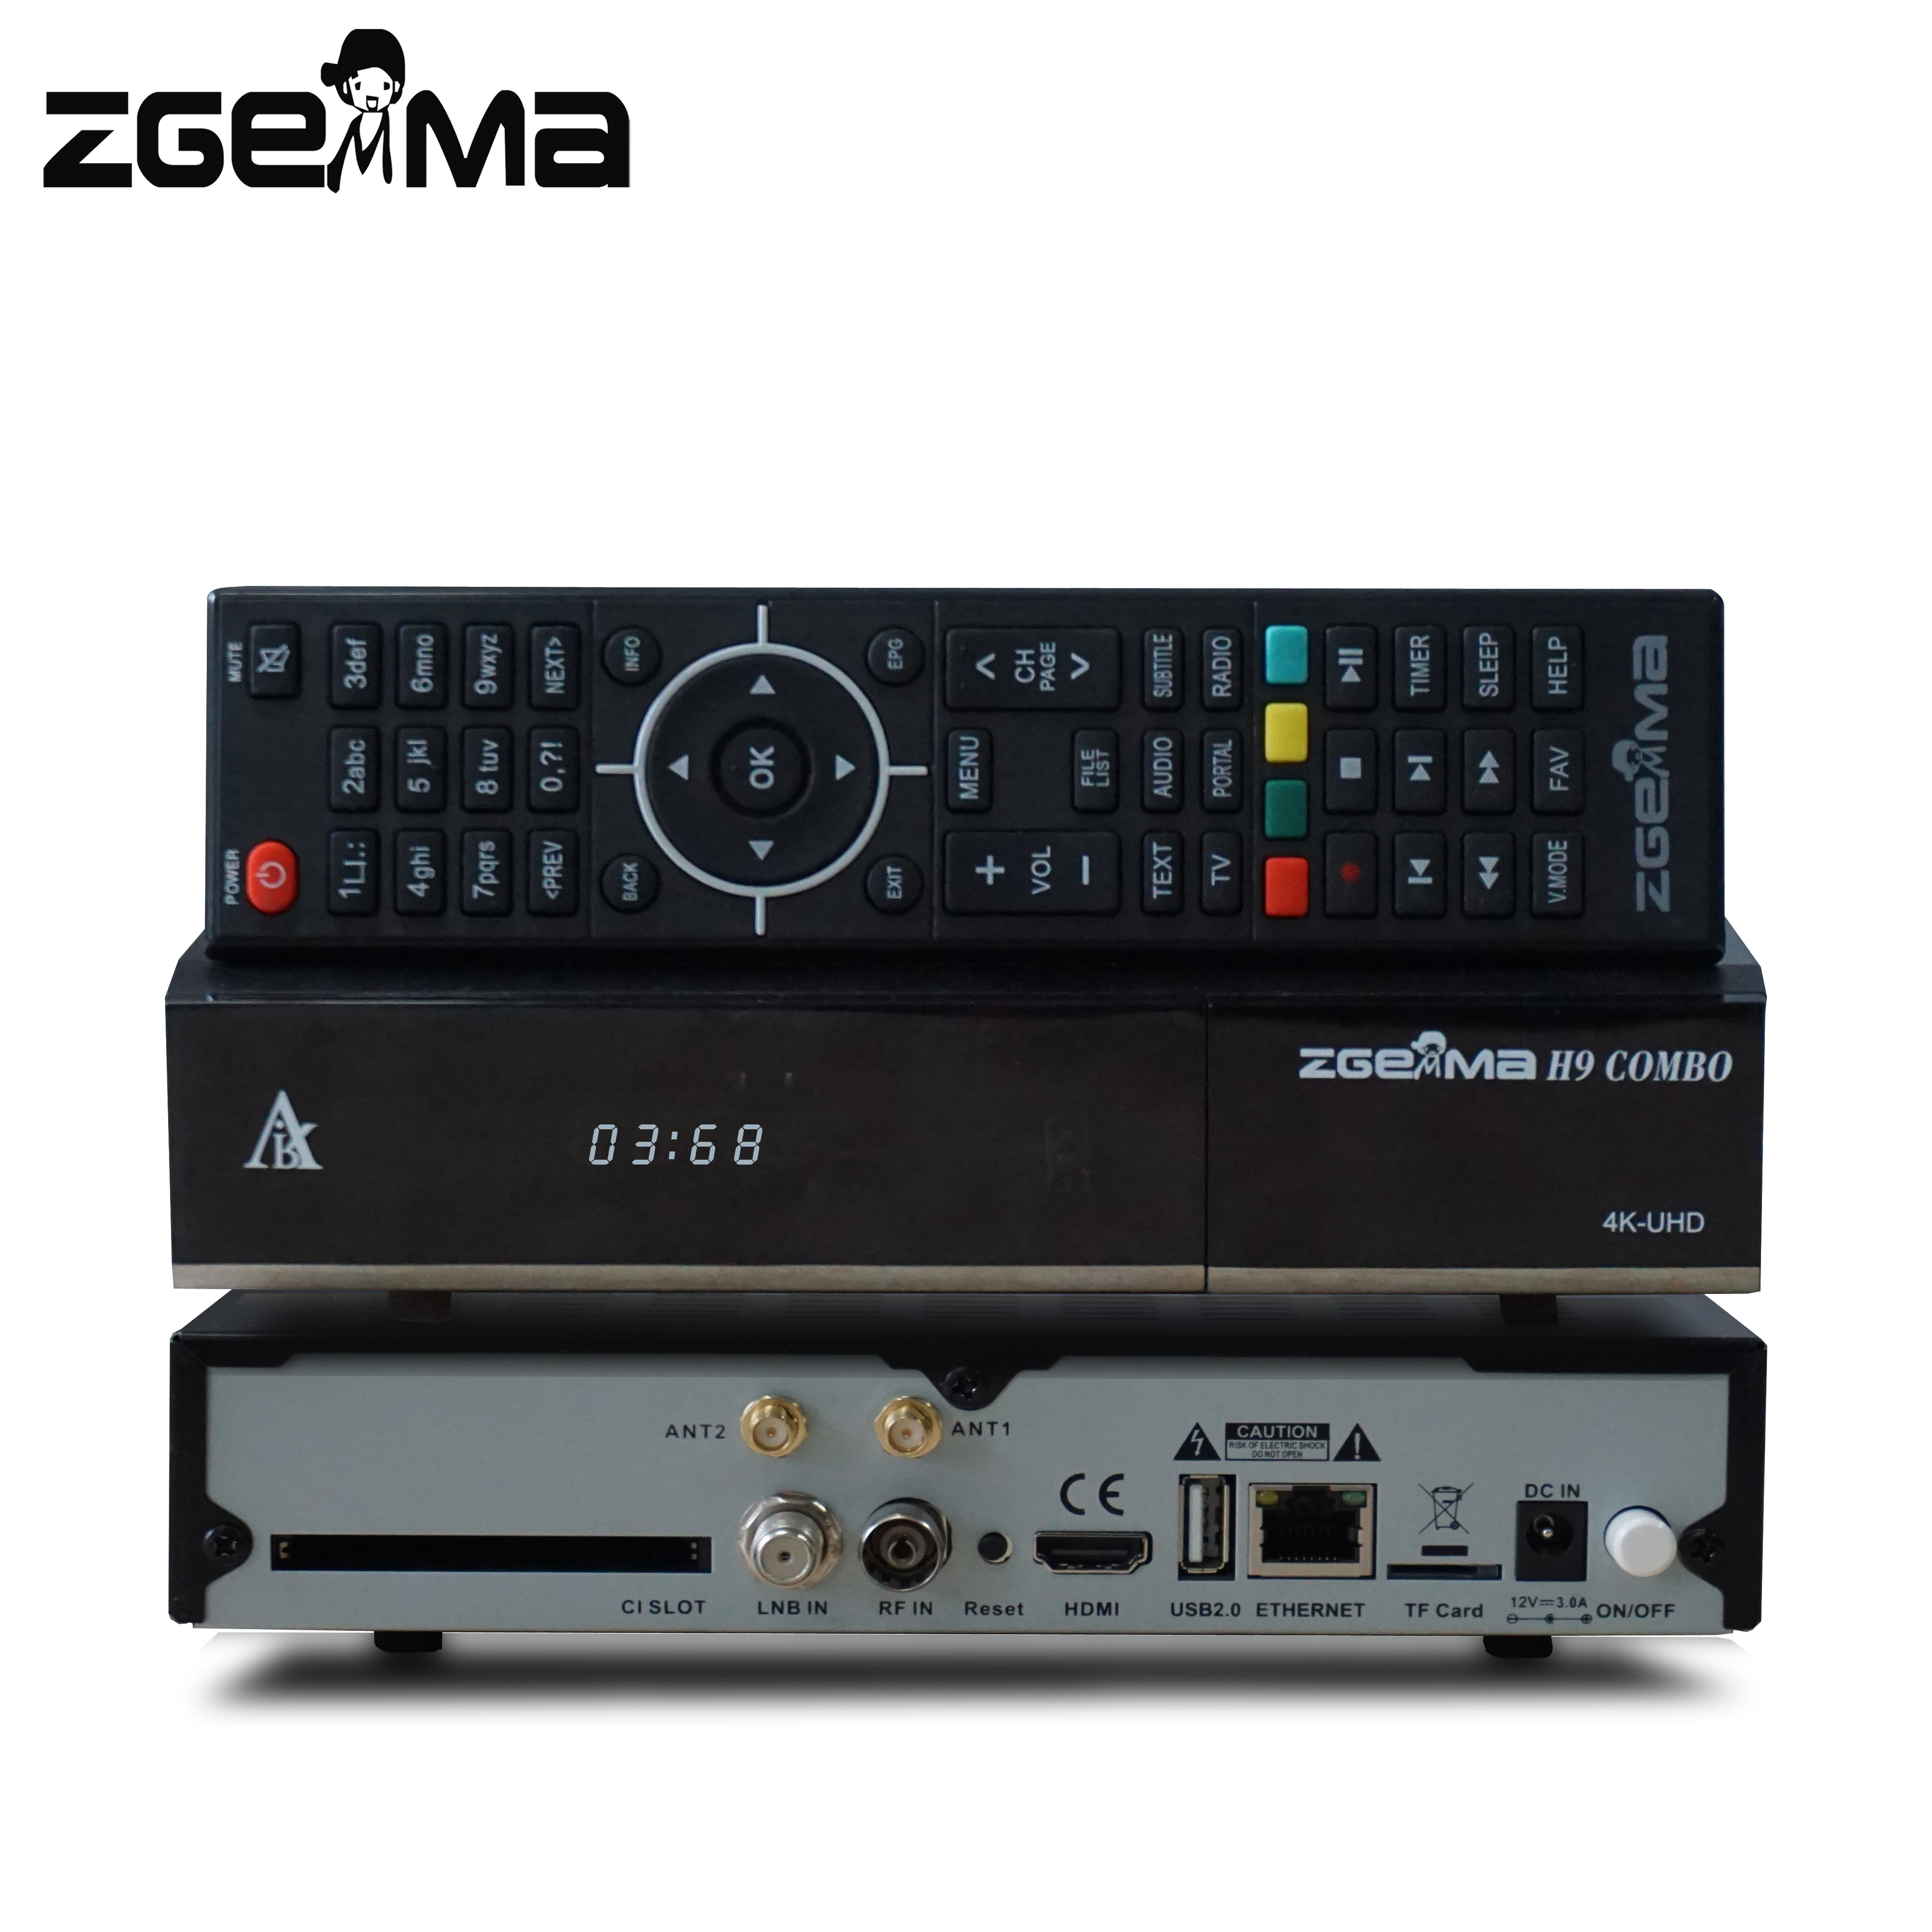 Nuovo combo 4 k tv decoder dvb s2x + dvb t2/c zgemma h9 combo ci plus e ca con 300 MHz wifi-build-in